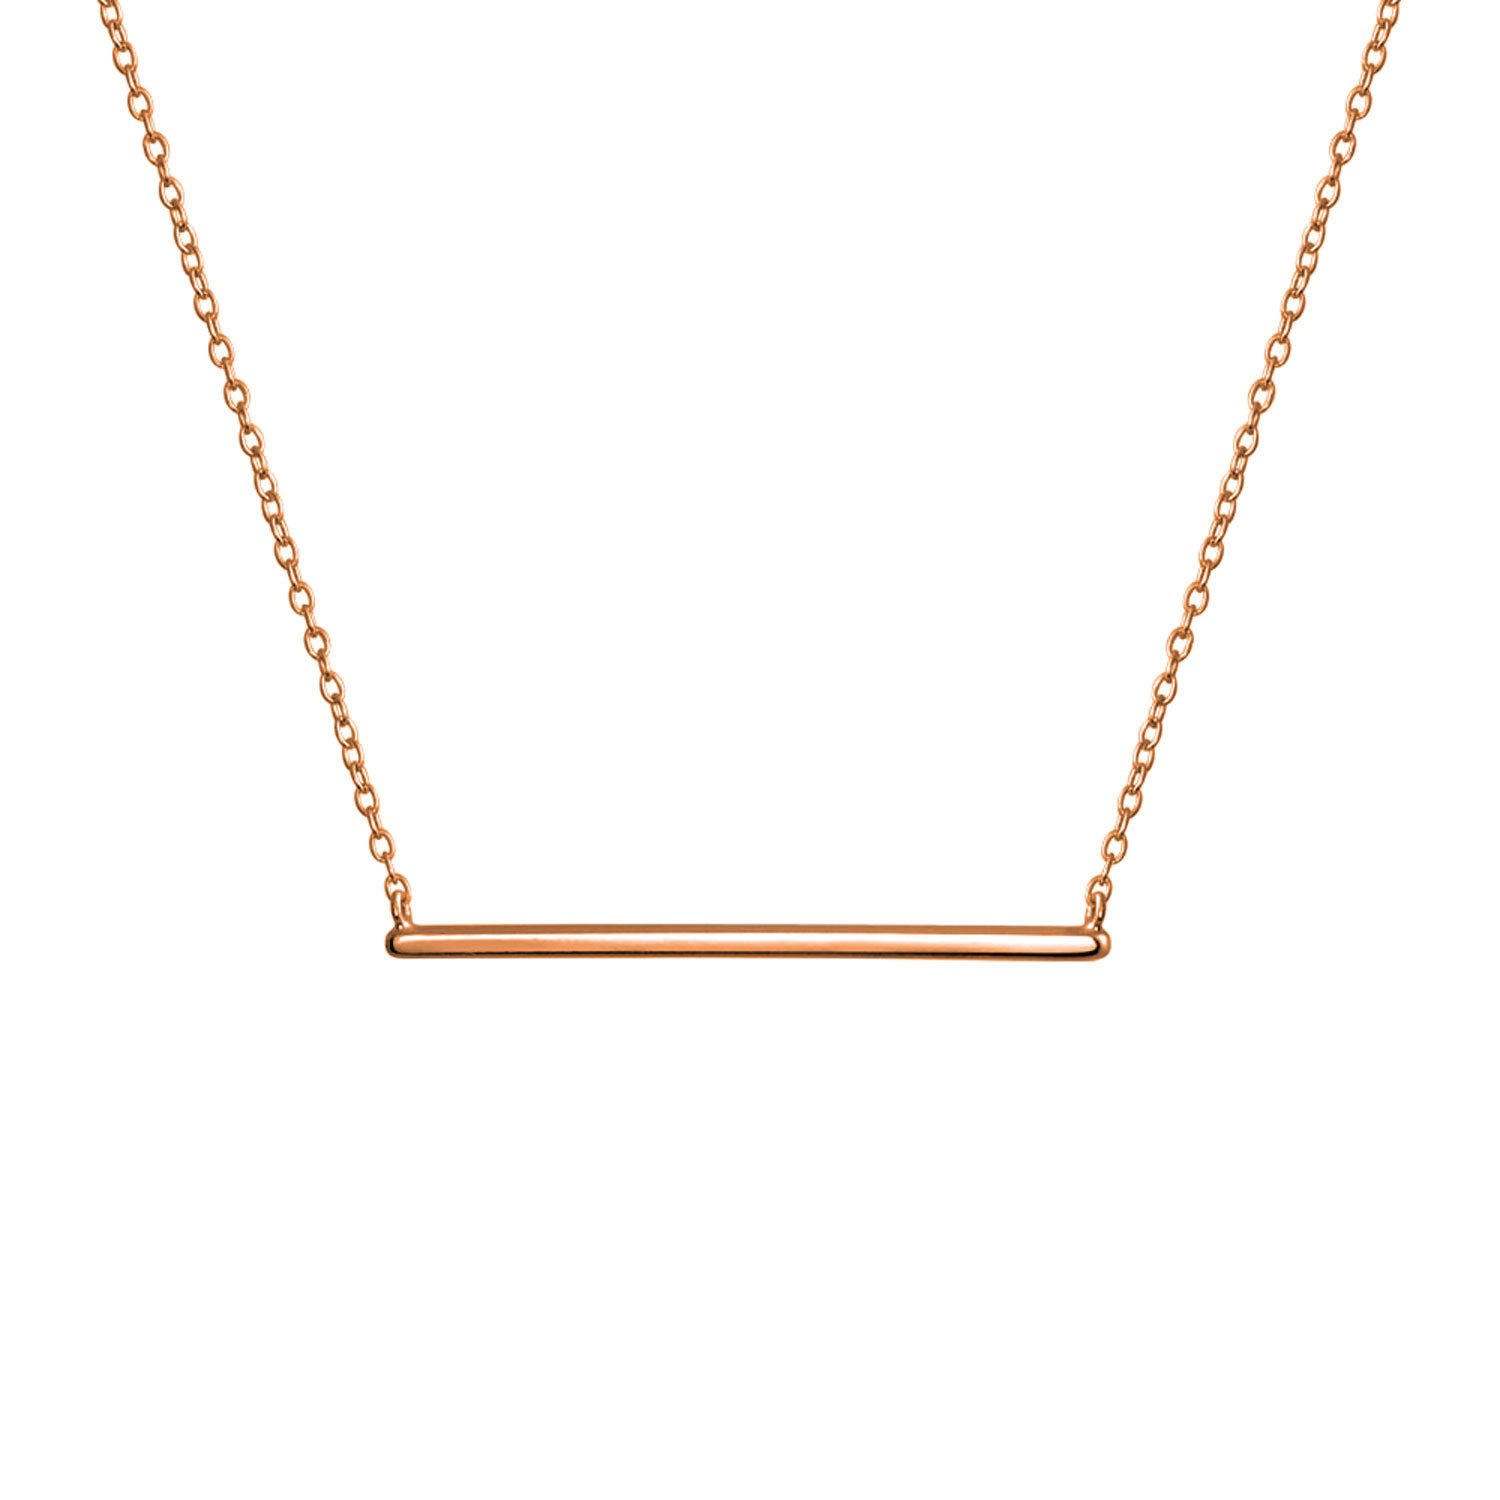 Bling Jewelry Modern Bar Pendant Rose Gold Plated Necklace 16 Inches PFS-105-0525RG